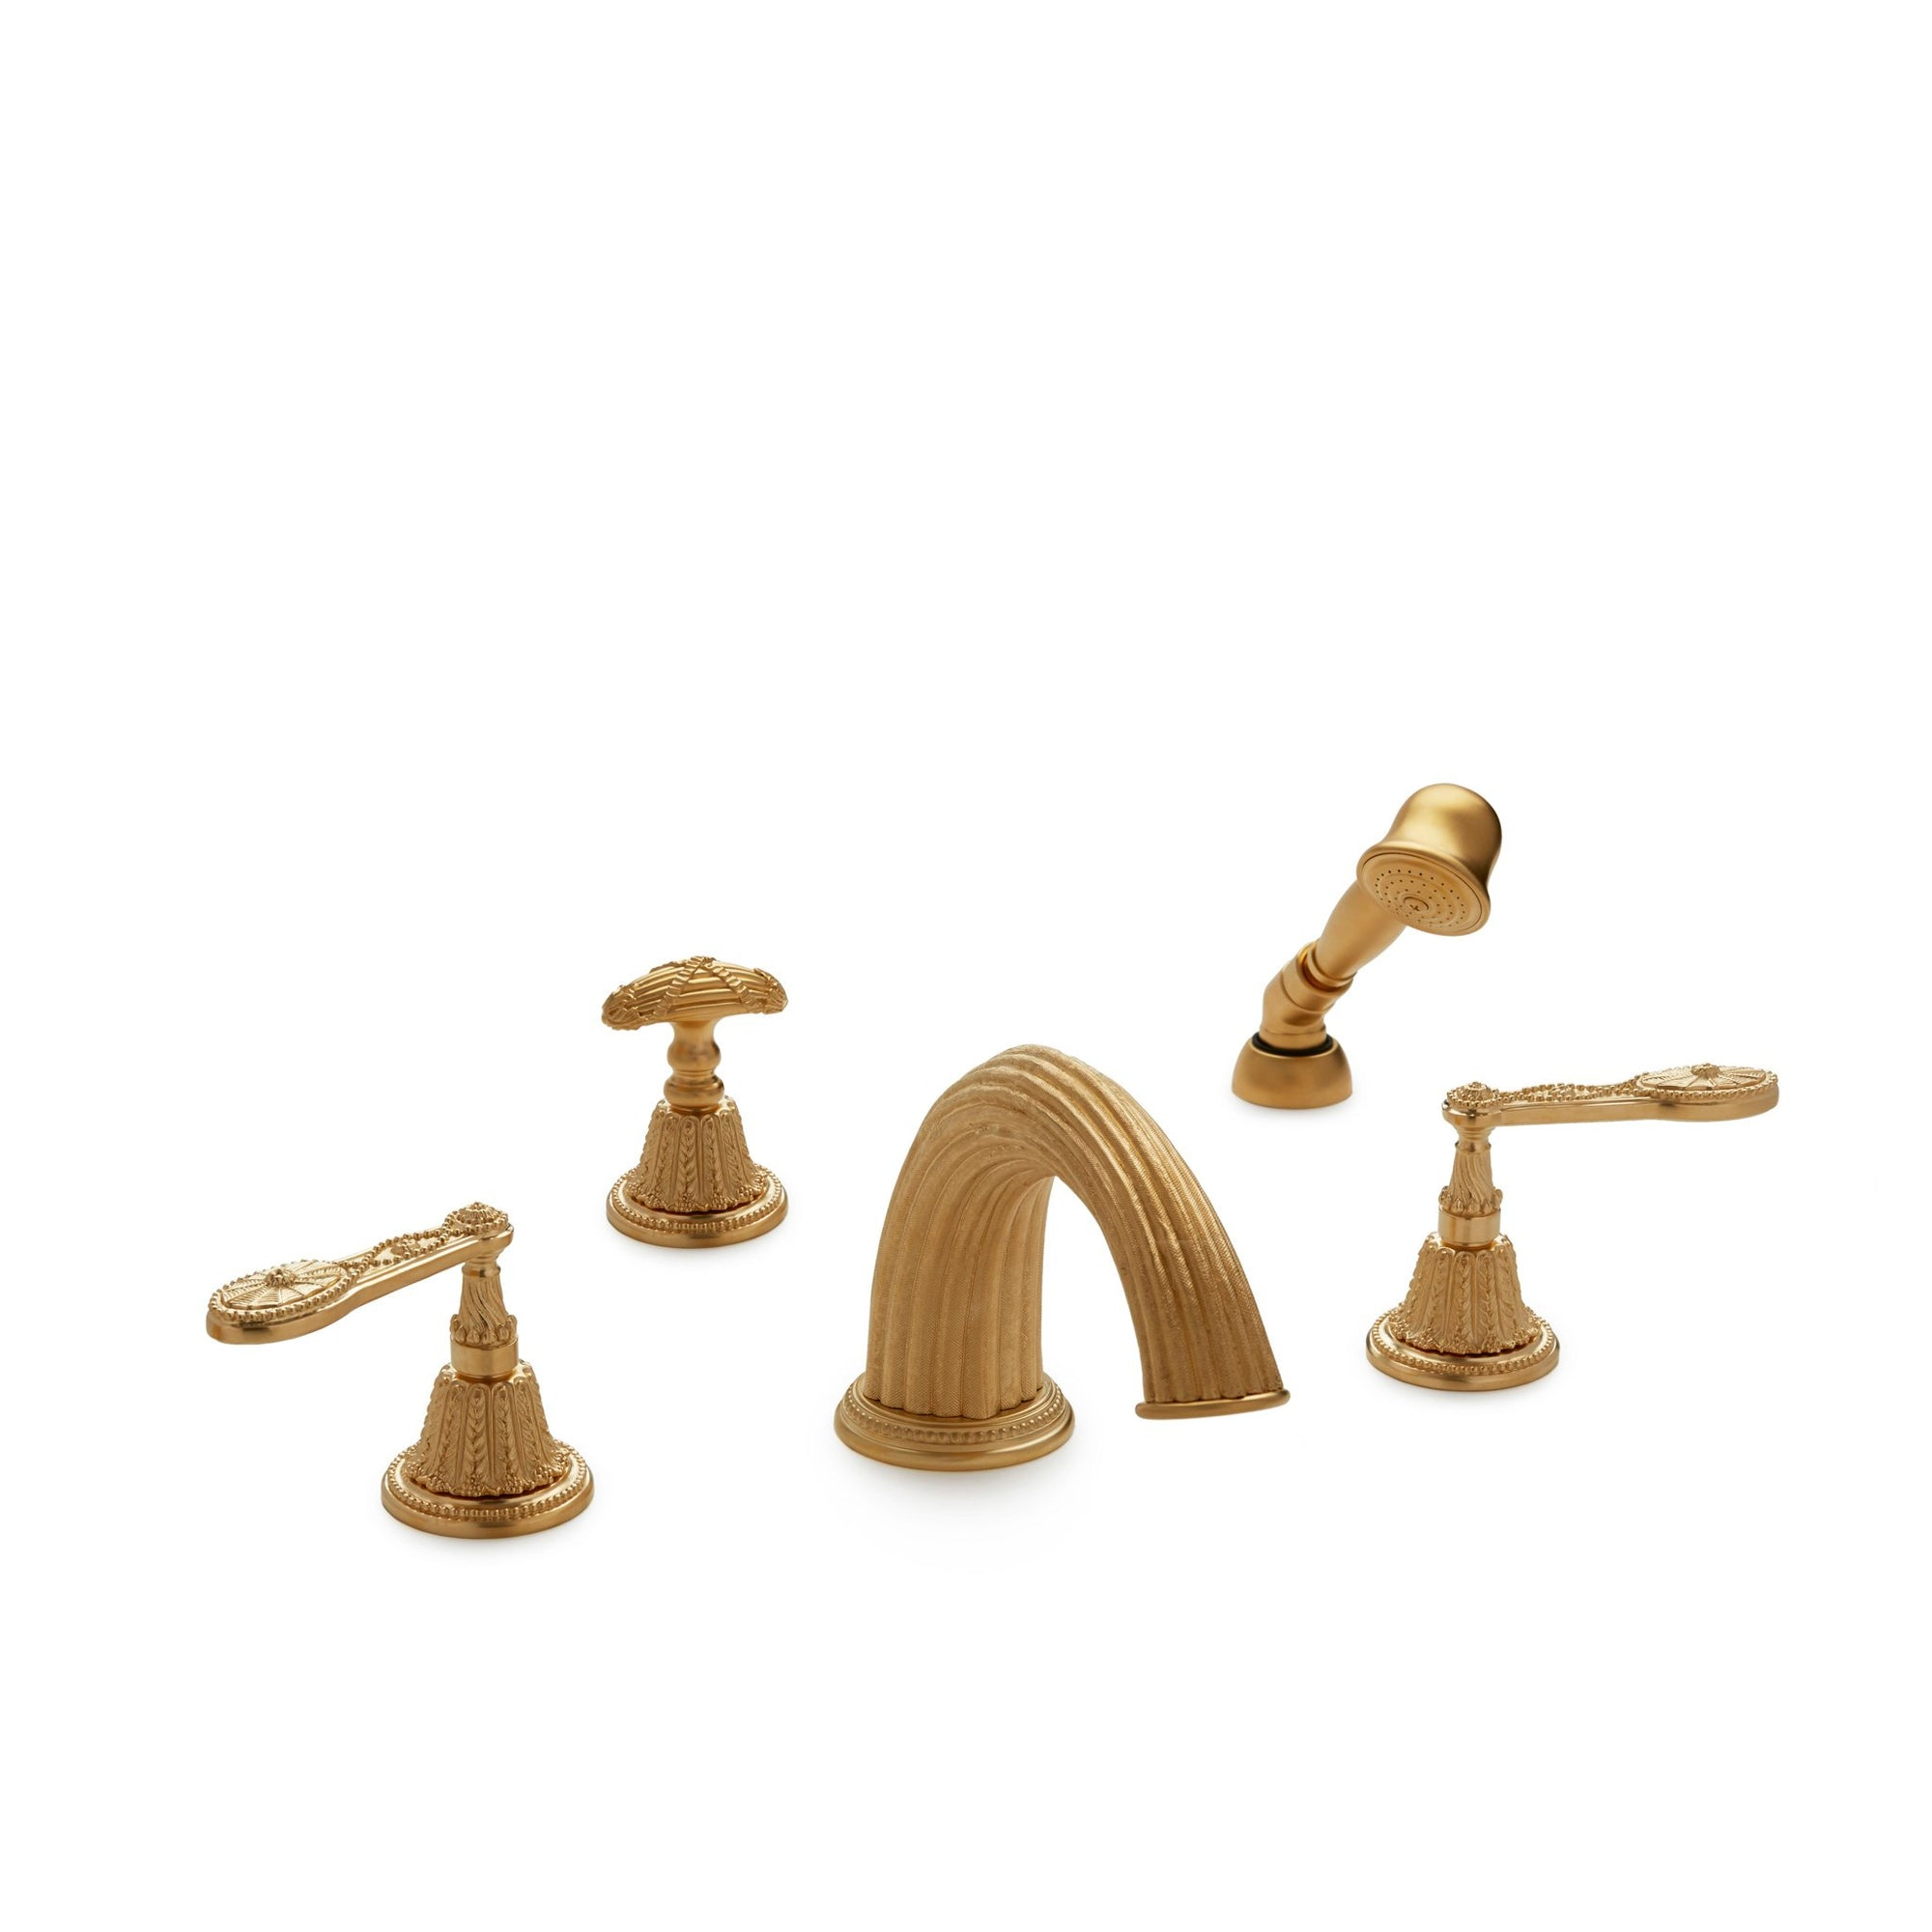 0913DTS821-GP Sherle Wagner International Adam Lever Deck Mount Tub Set with Hand Shower in Gold Plate metal finish